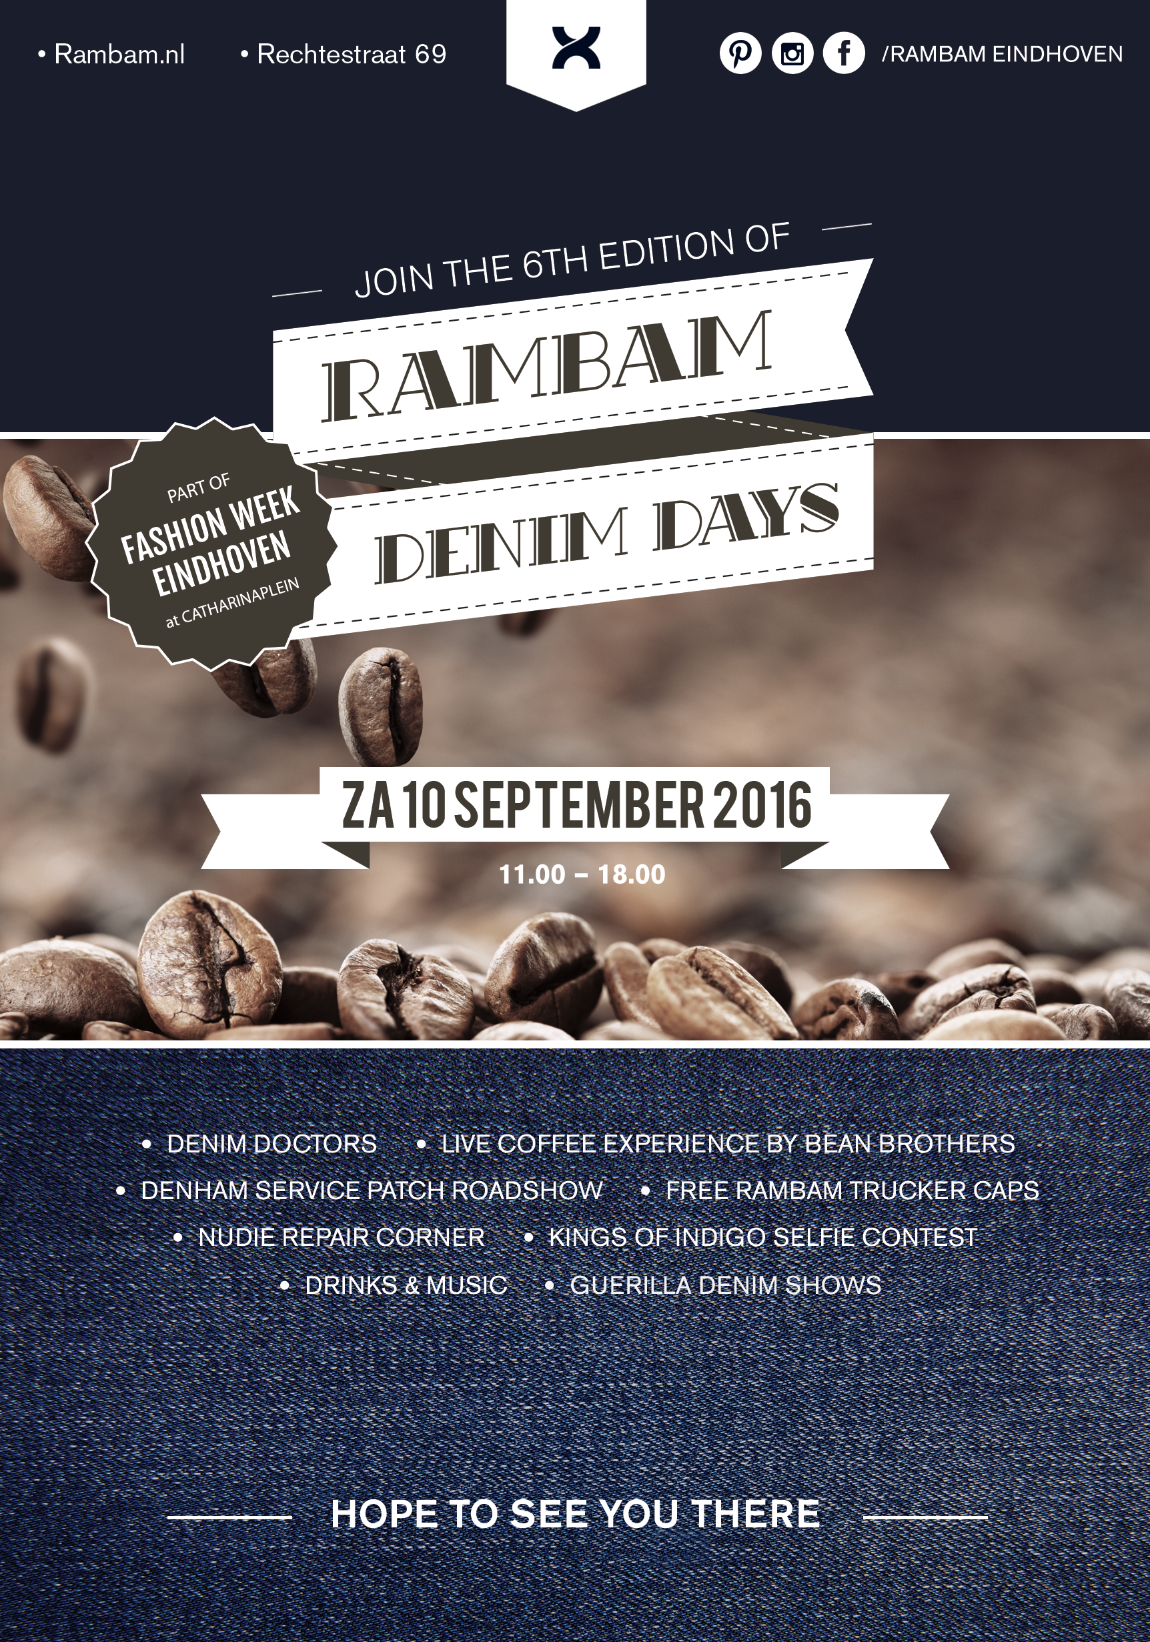 rambam store winkel eindhoven long john blog denim days 2016 september blue denham kings of indigo nudie jeans (2)